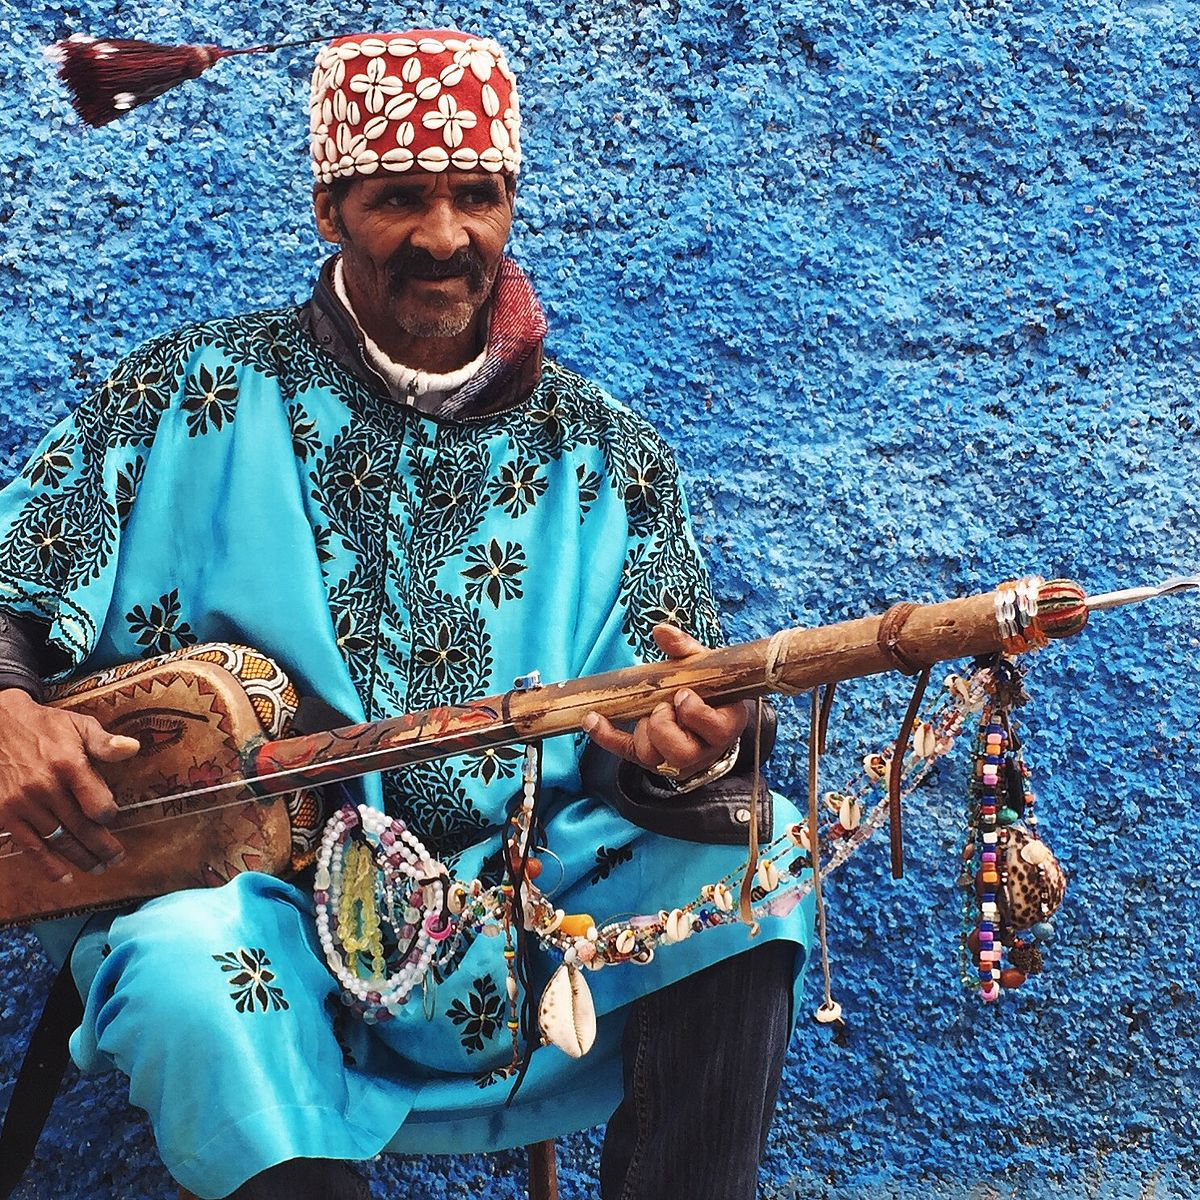 MUSIC EL TÉLÉCHARGER DE KASRI HAMID GNAWA